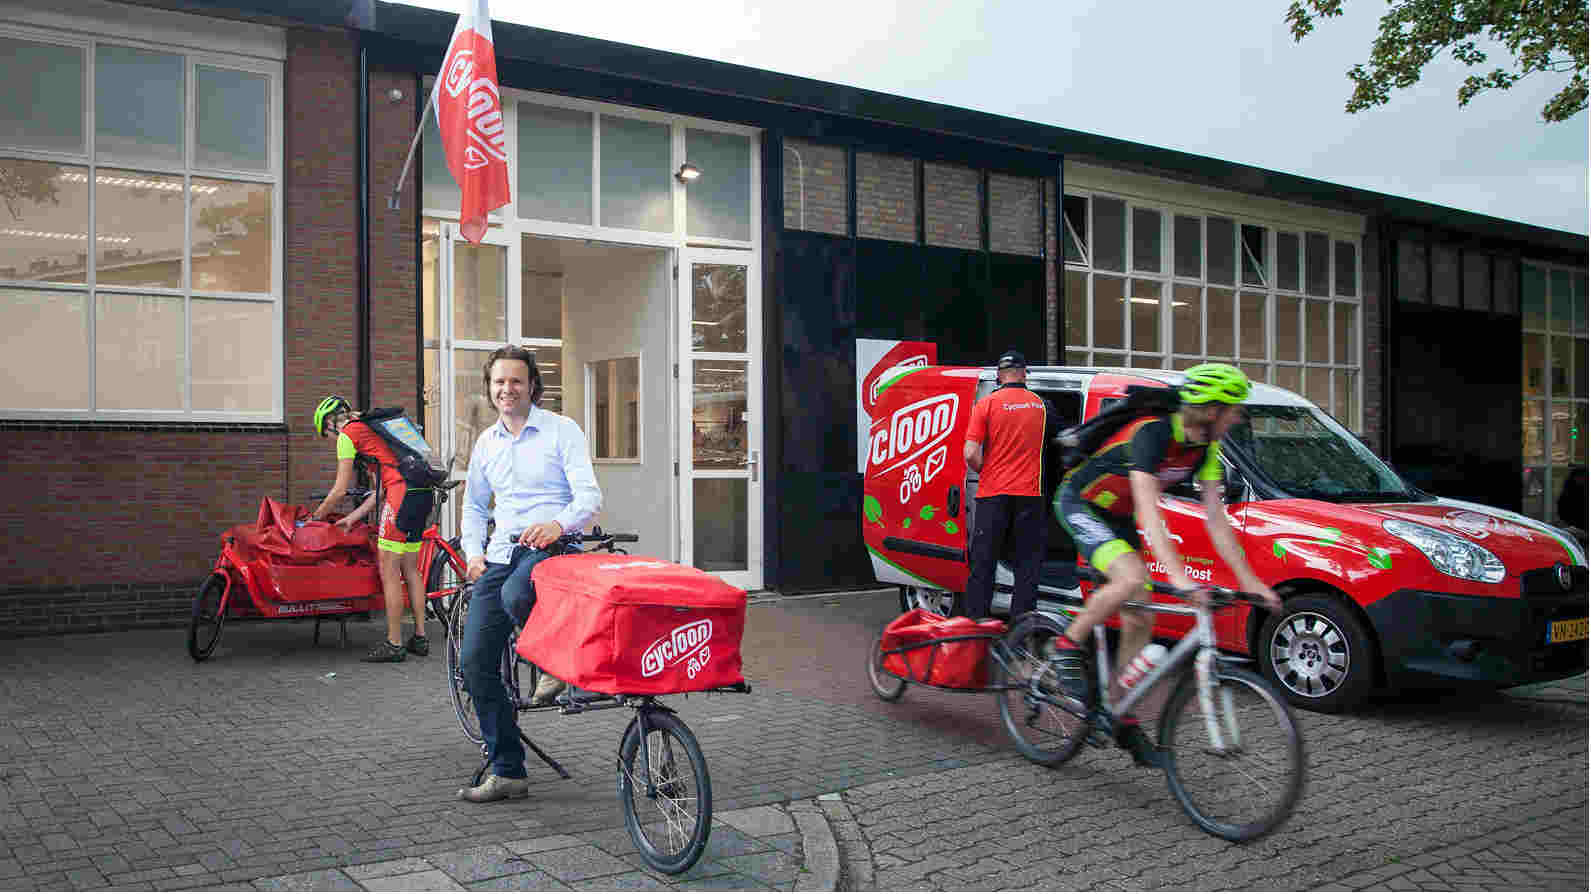 Fietskoeriers - nationwide, same day deliveries by bike